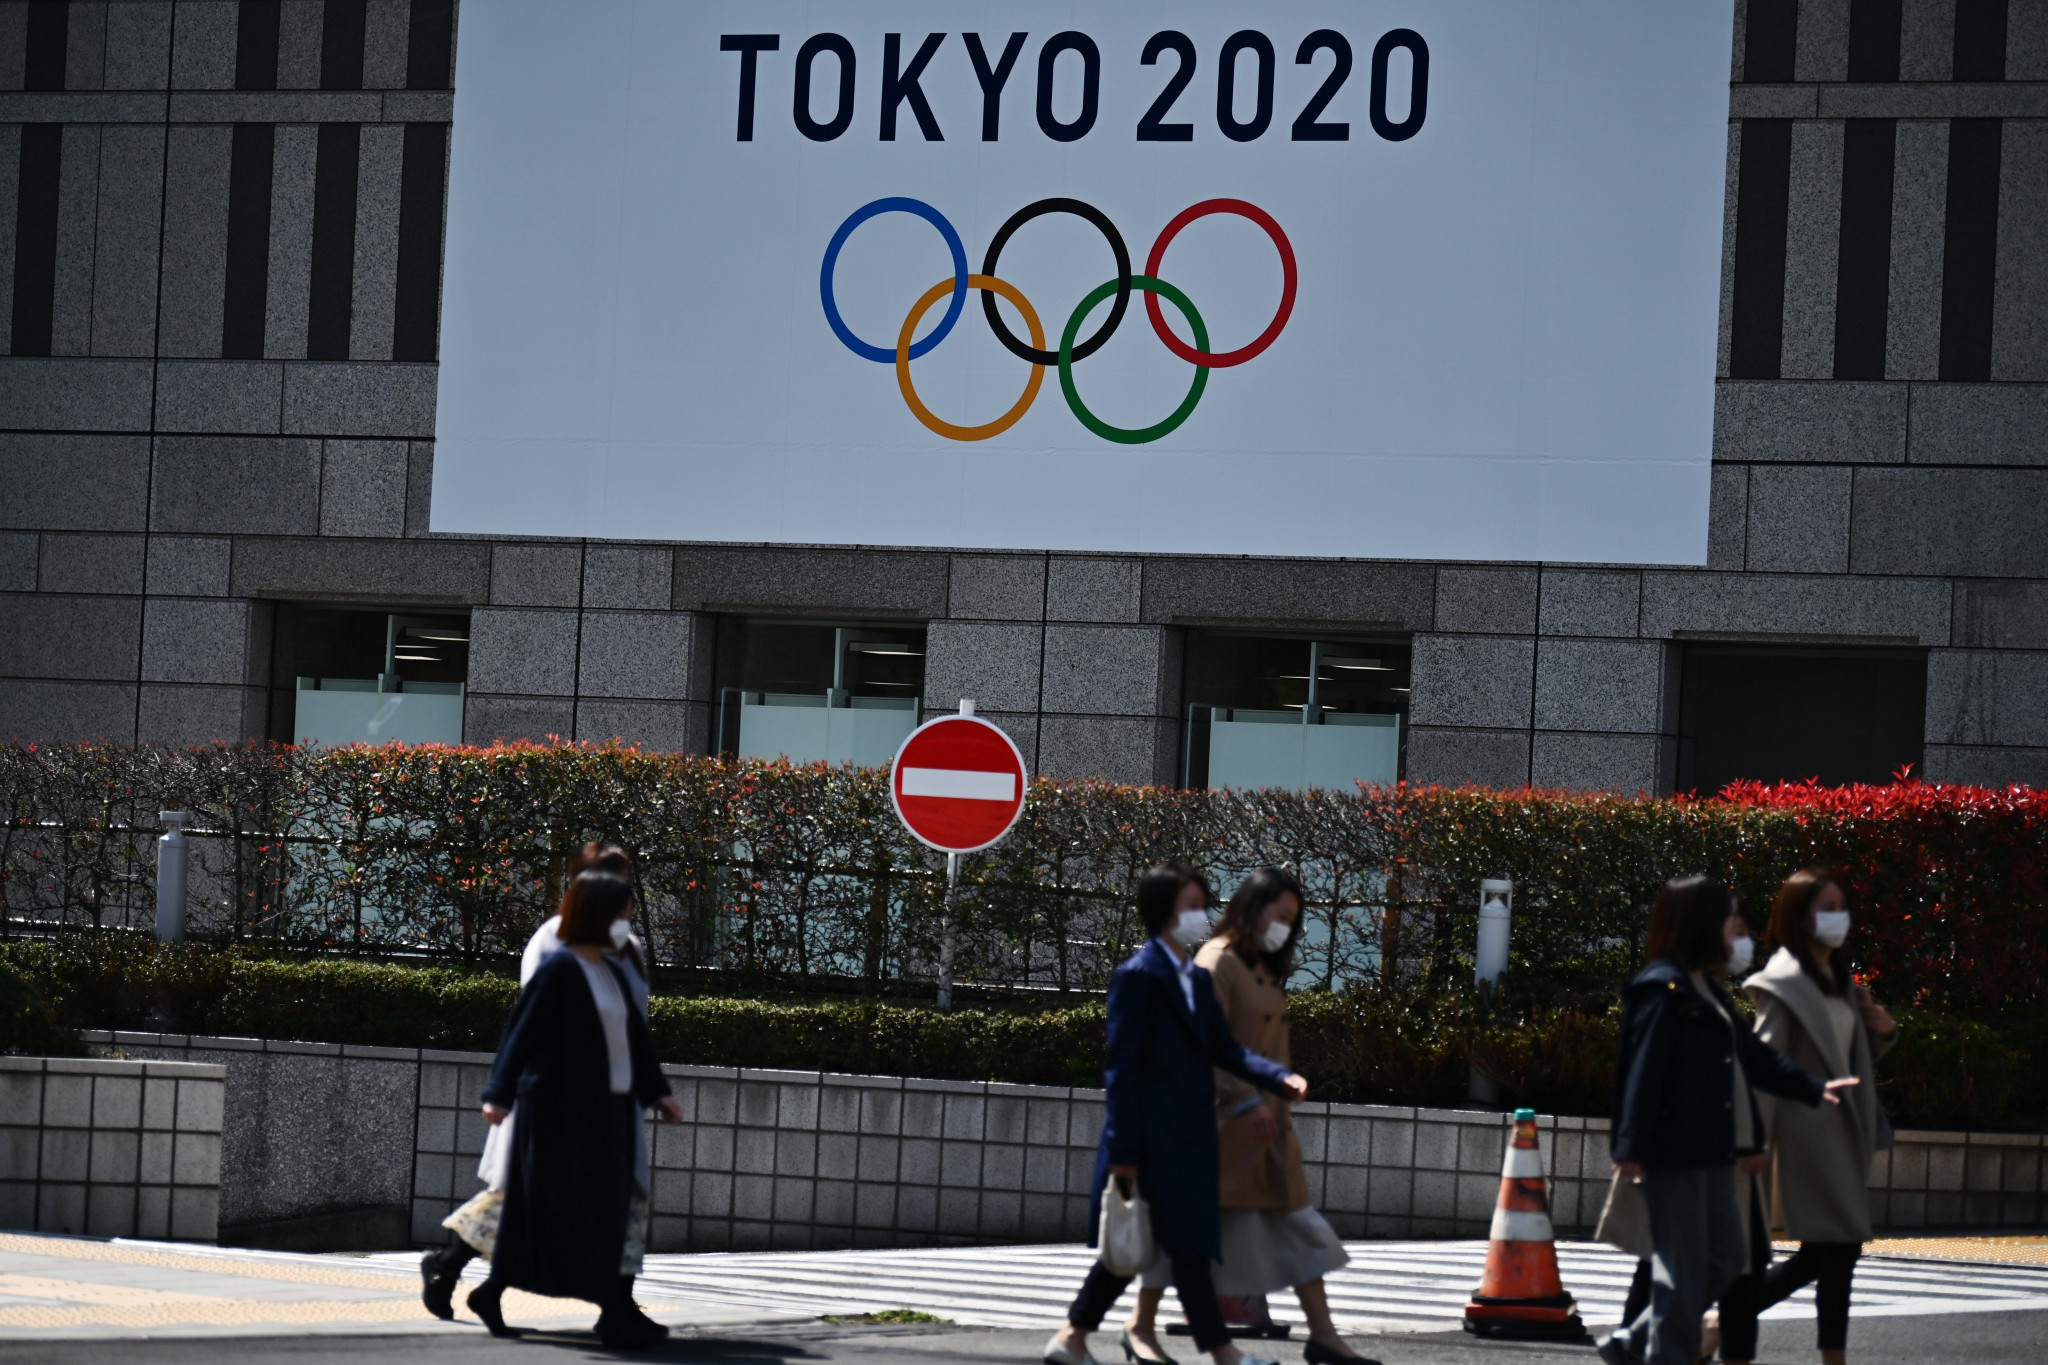 Tokyo 2020 was postponed on Tuesday ©Getty Images